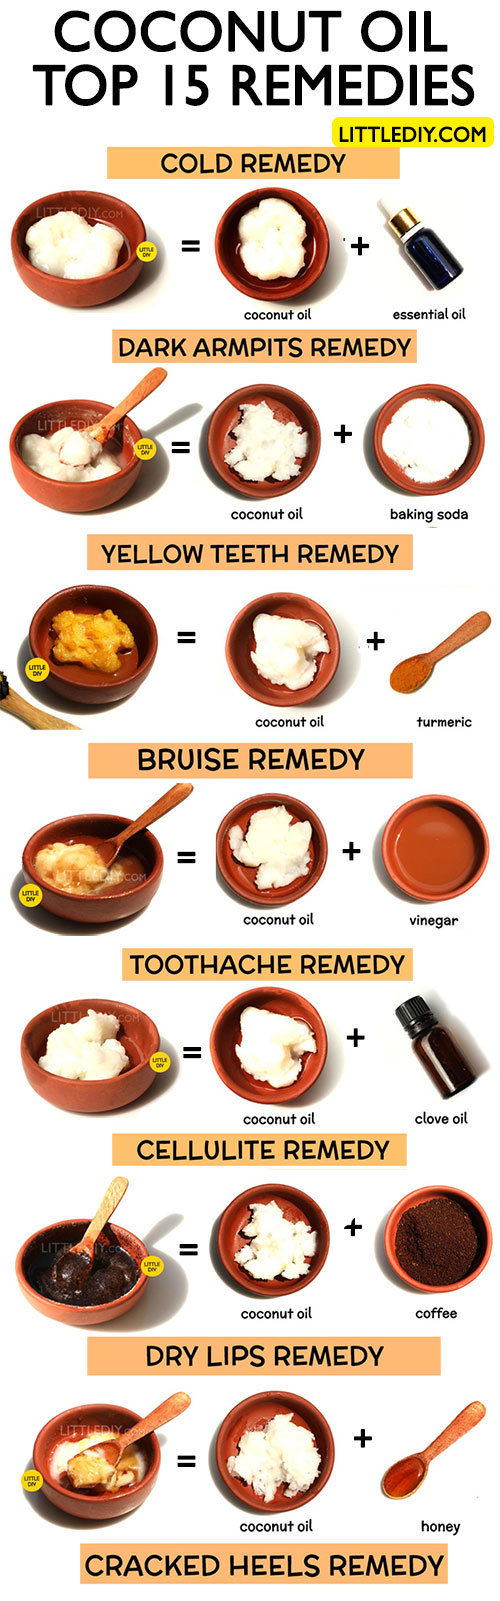 TOP 15 AMAZING COCONUT OIL HOME REMEDIES